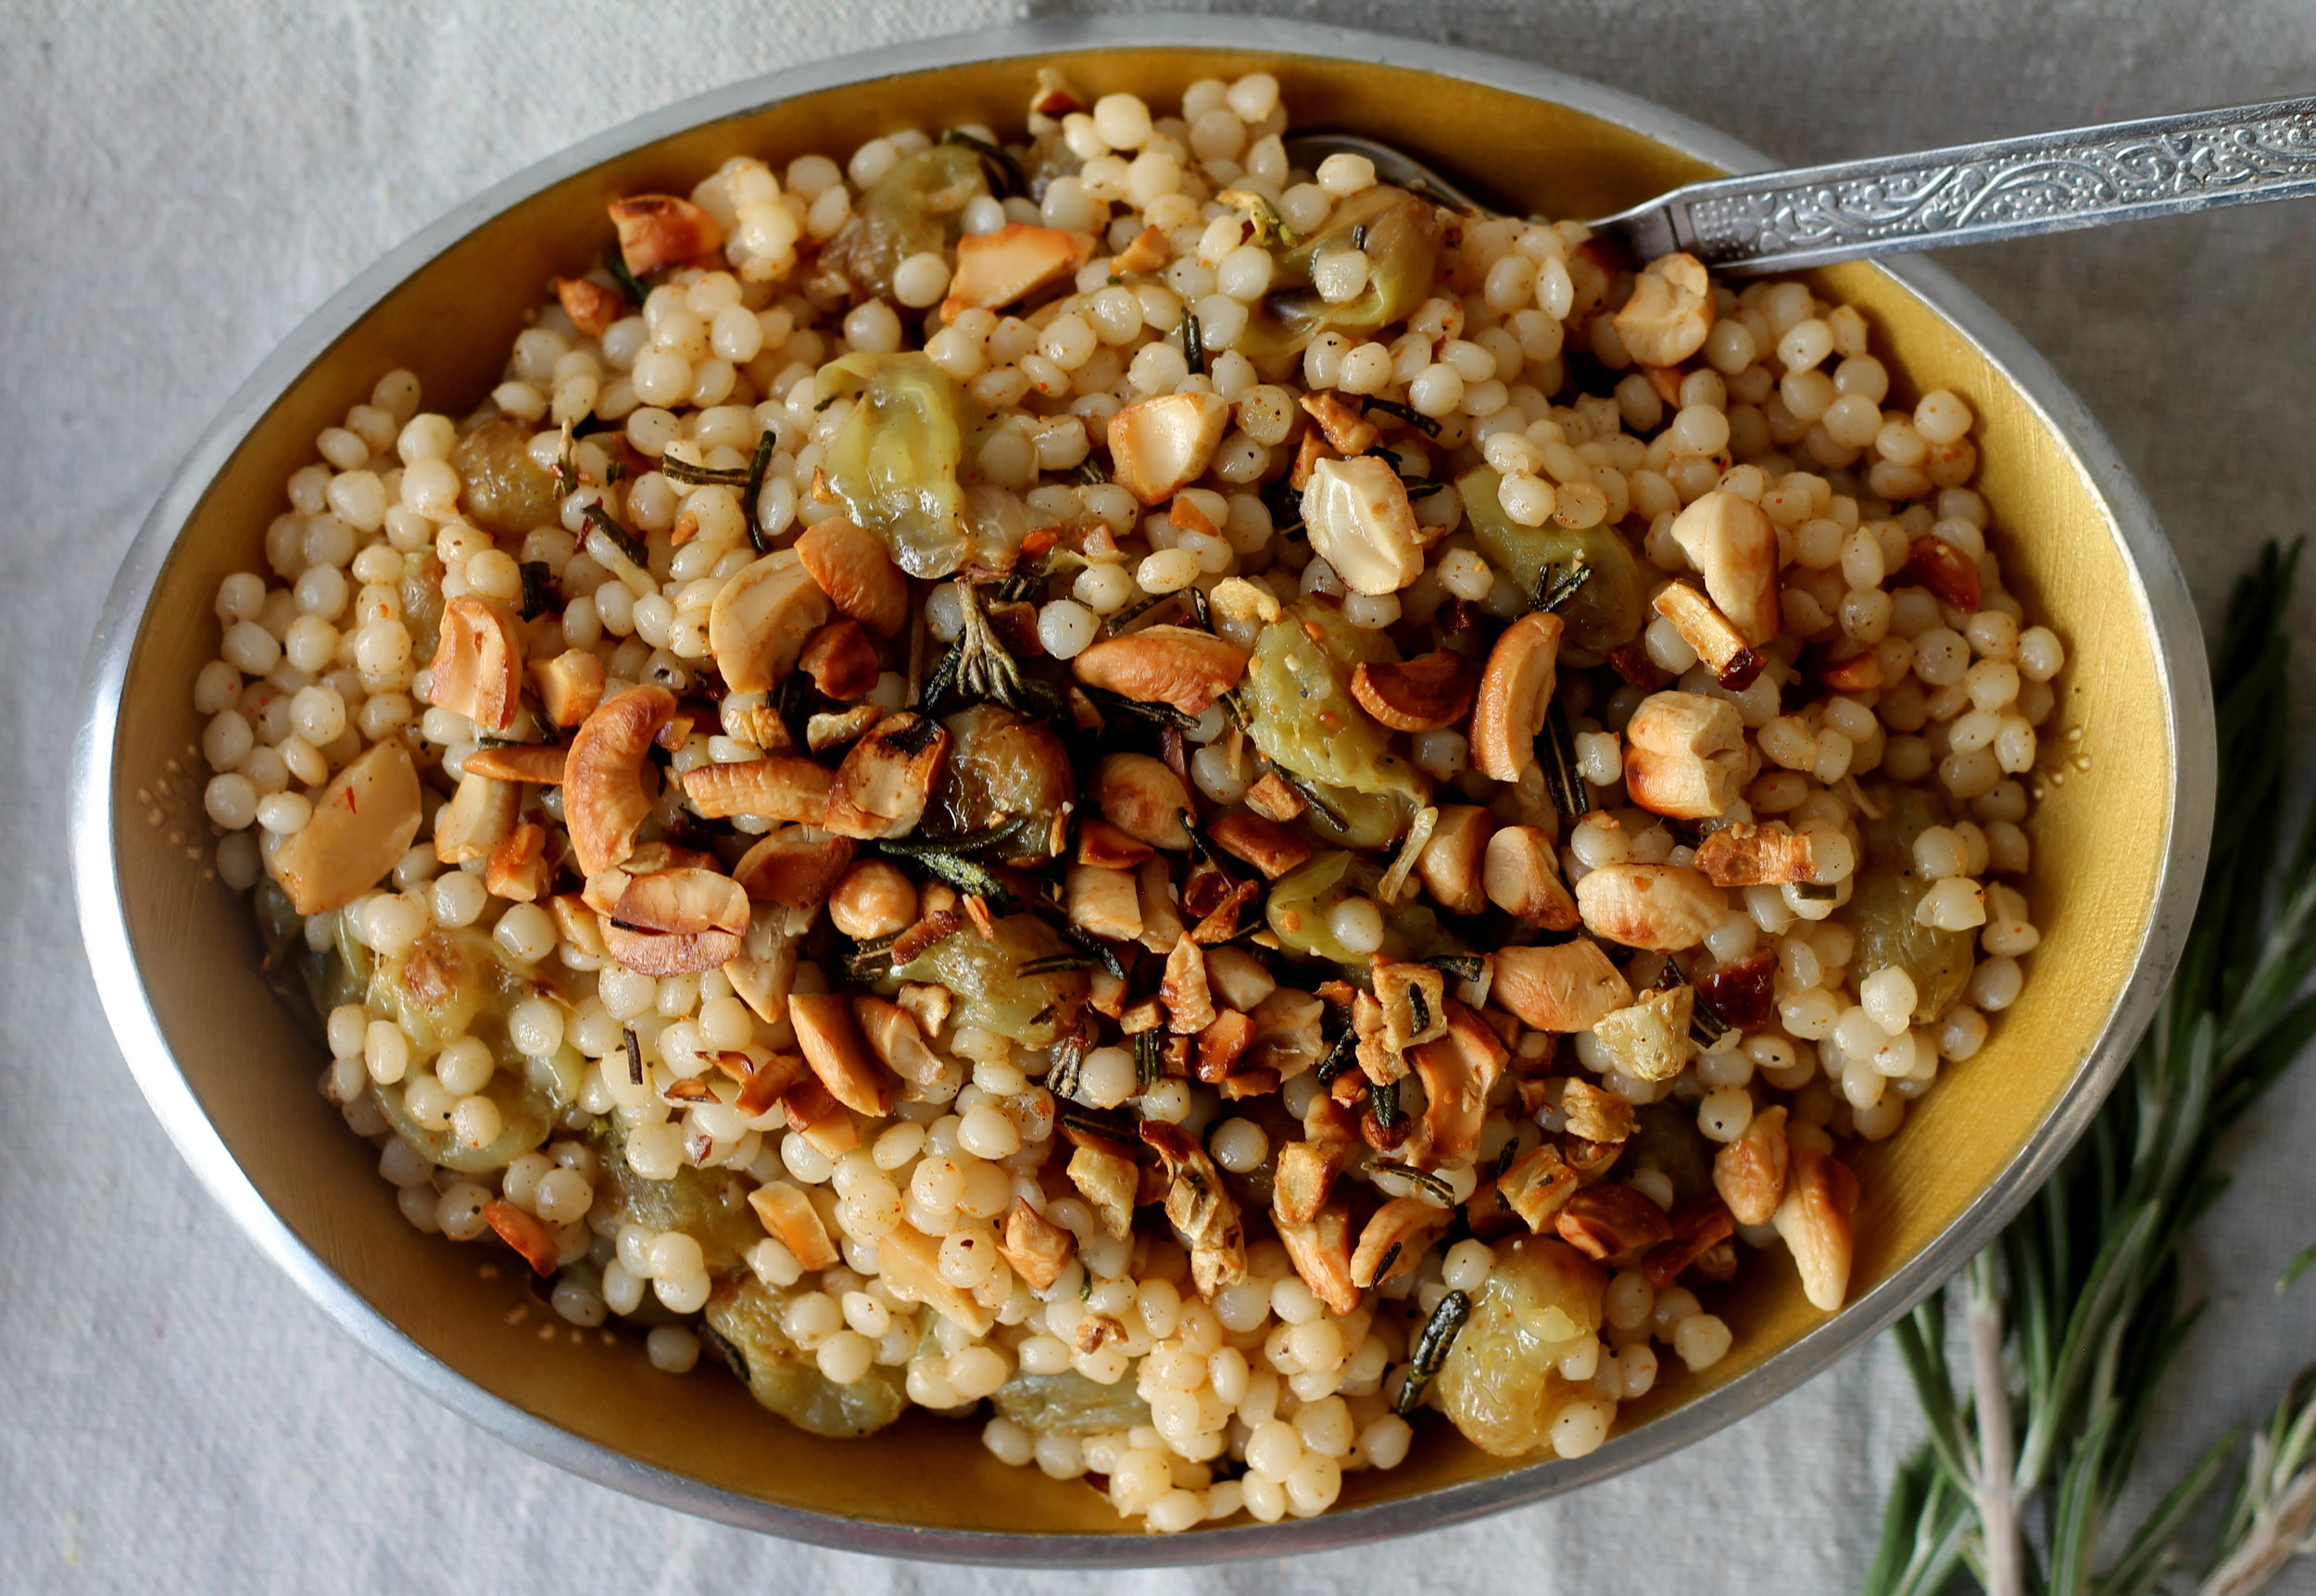 sraeli couscous with roasted grapes, rosemary